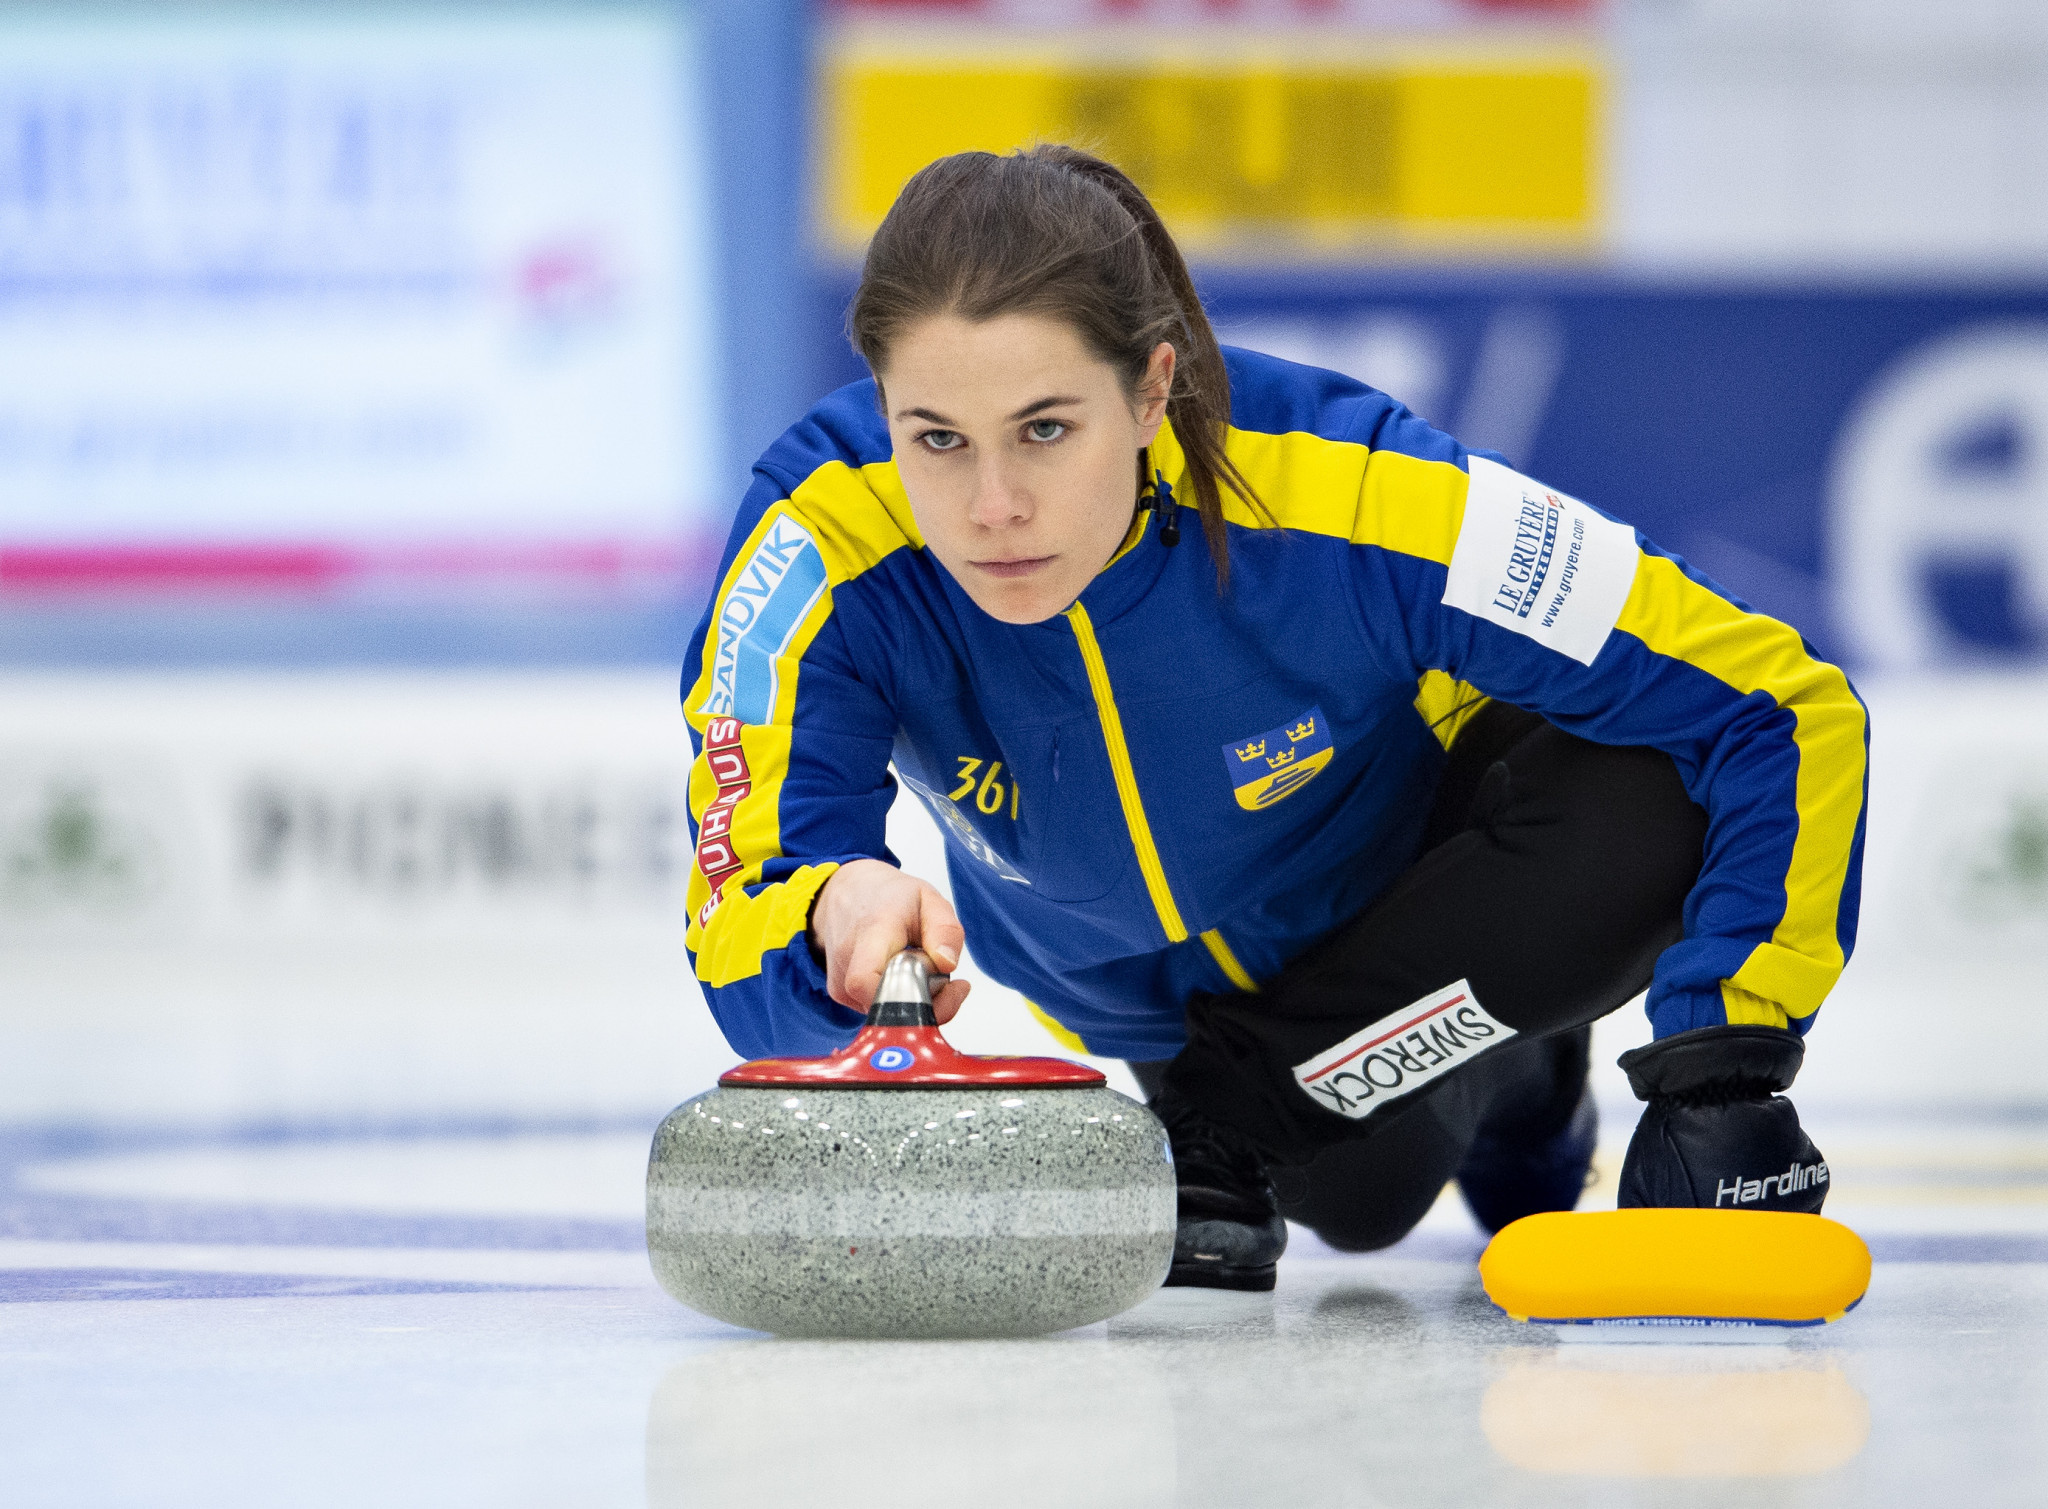 Sweden's Anna Hasselborg will be the skip for her team at the Curling World Cup grand final ©Getty Images